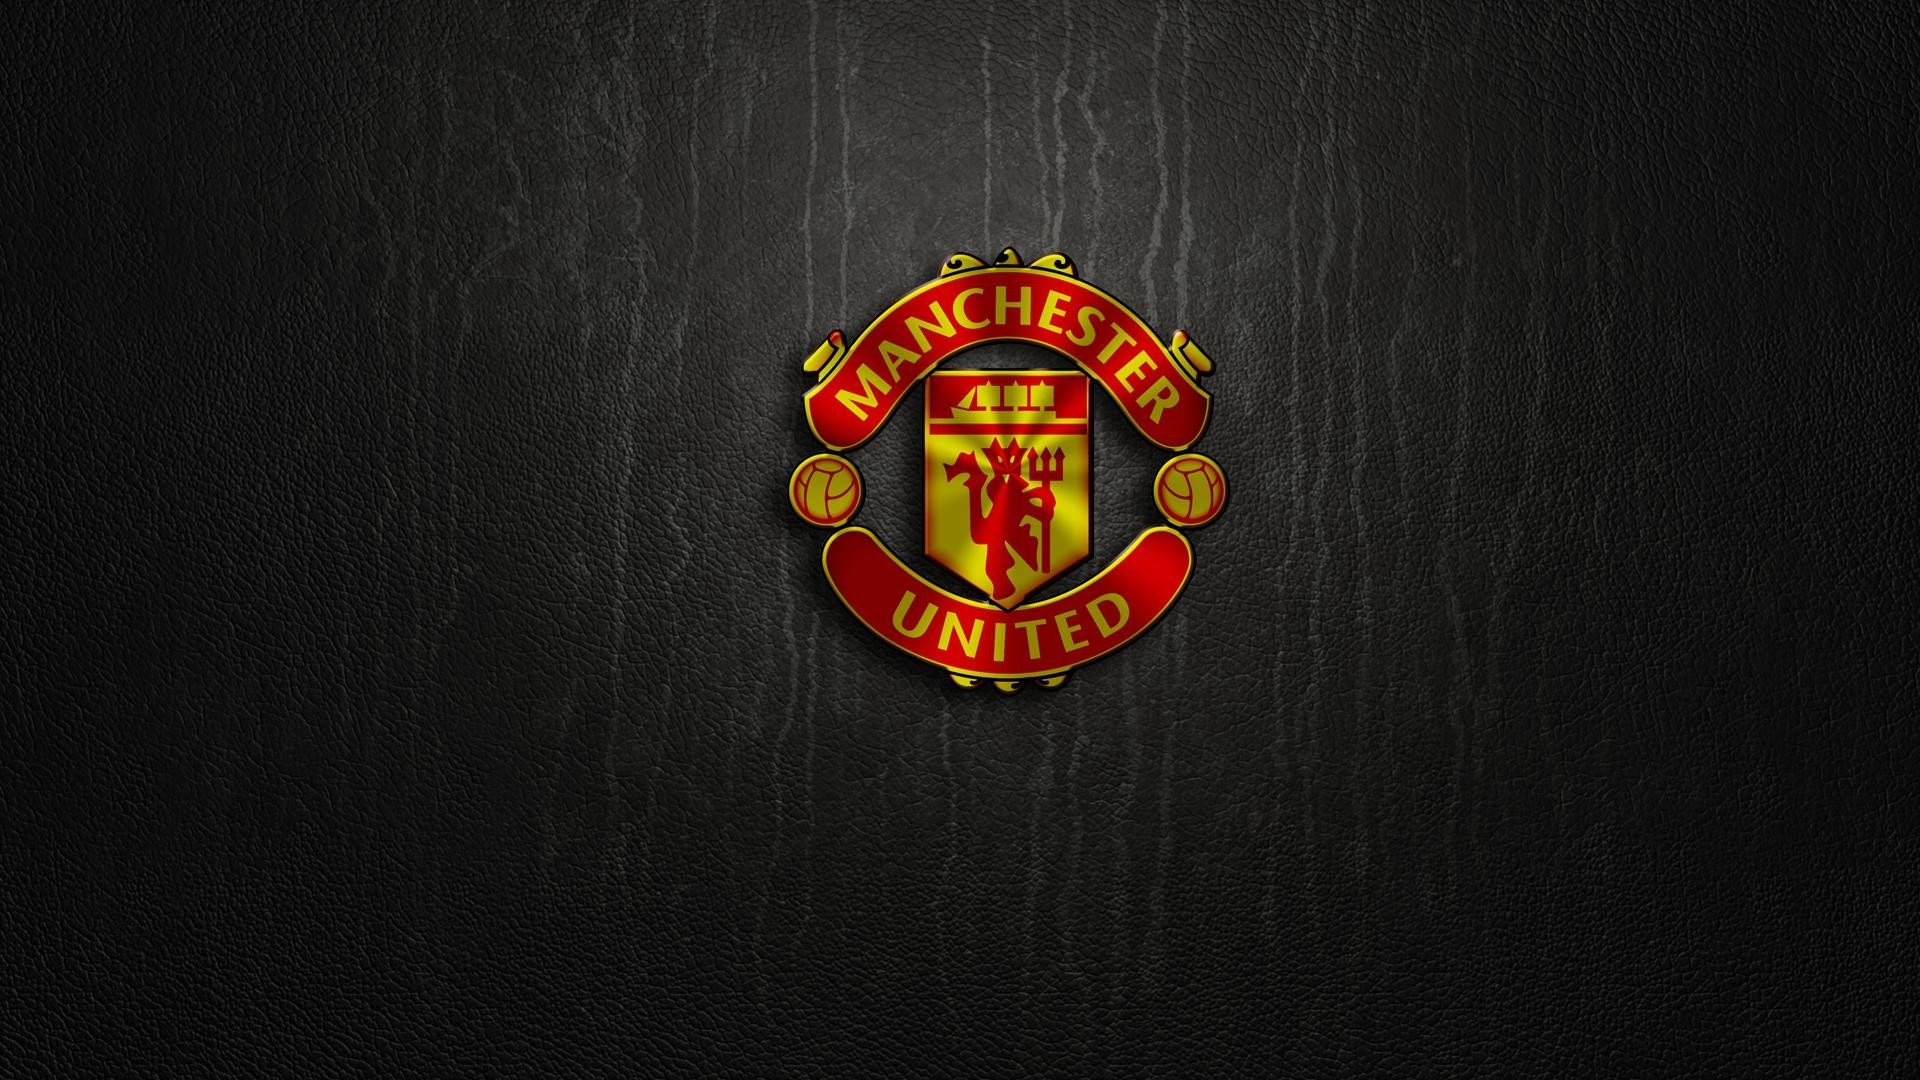 Manchester united wallpaper 3d 2018 wallpapertag - Cool man united wallpapers ...